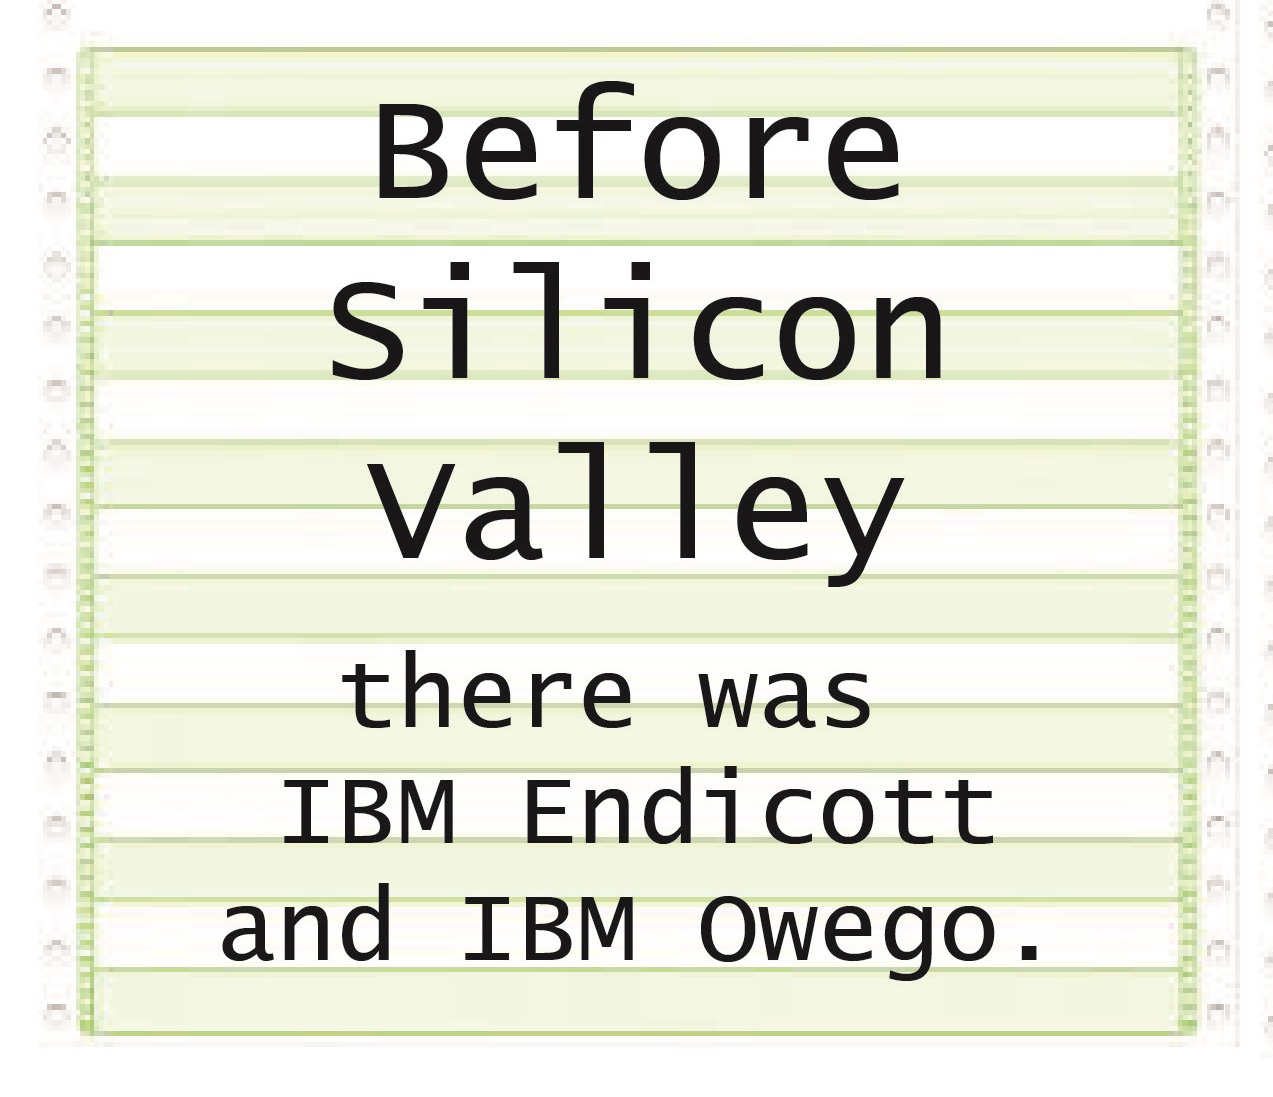 Before Silicon Valley - title block.jpg